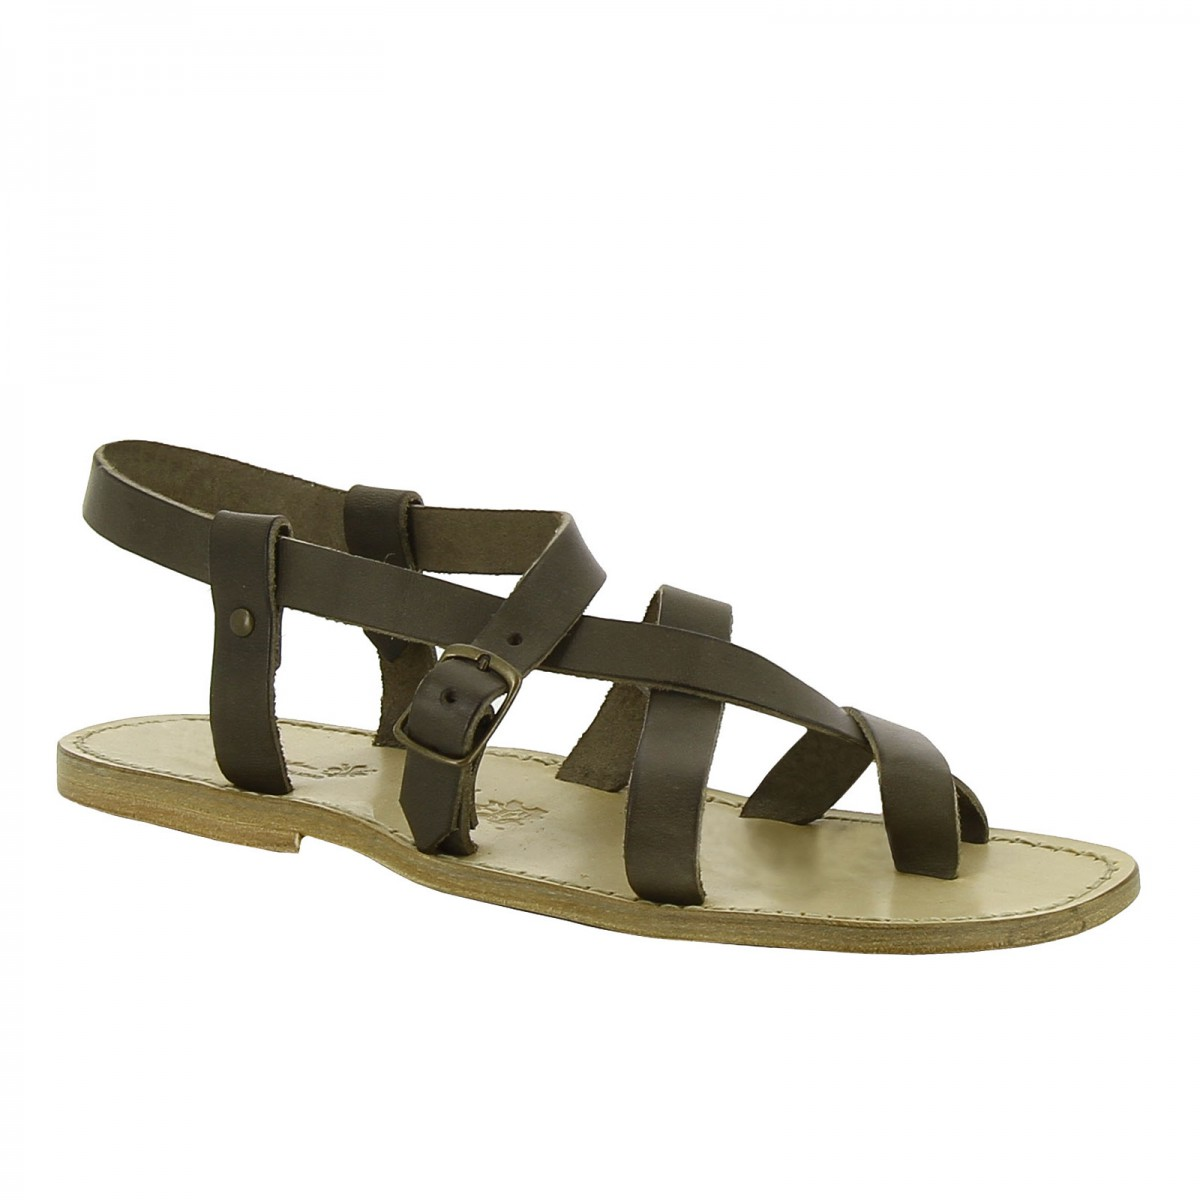 35e1b832a4c Gladiator sandals for men in mud color calf leather. Loading zoom